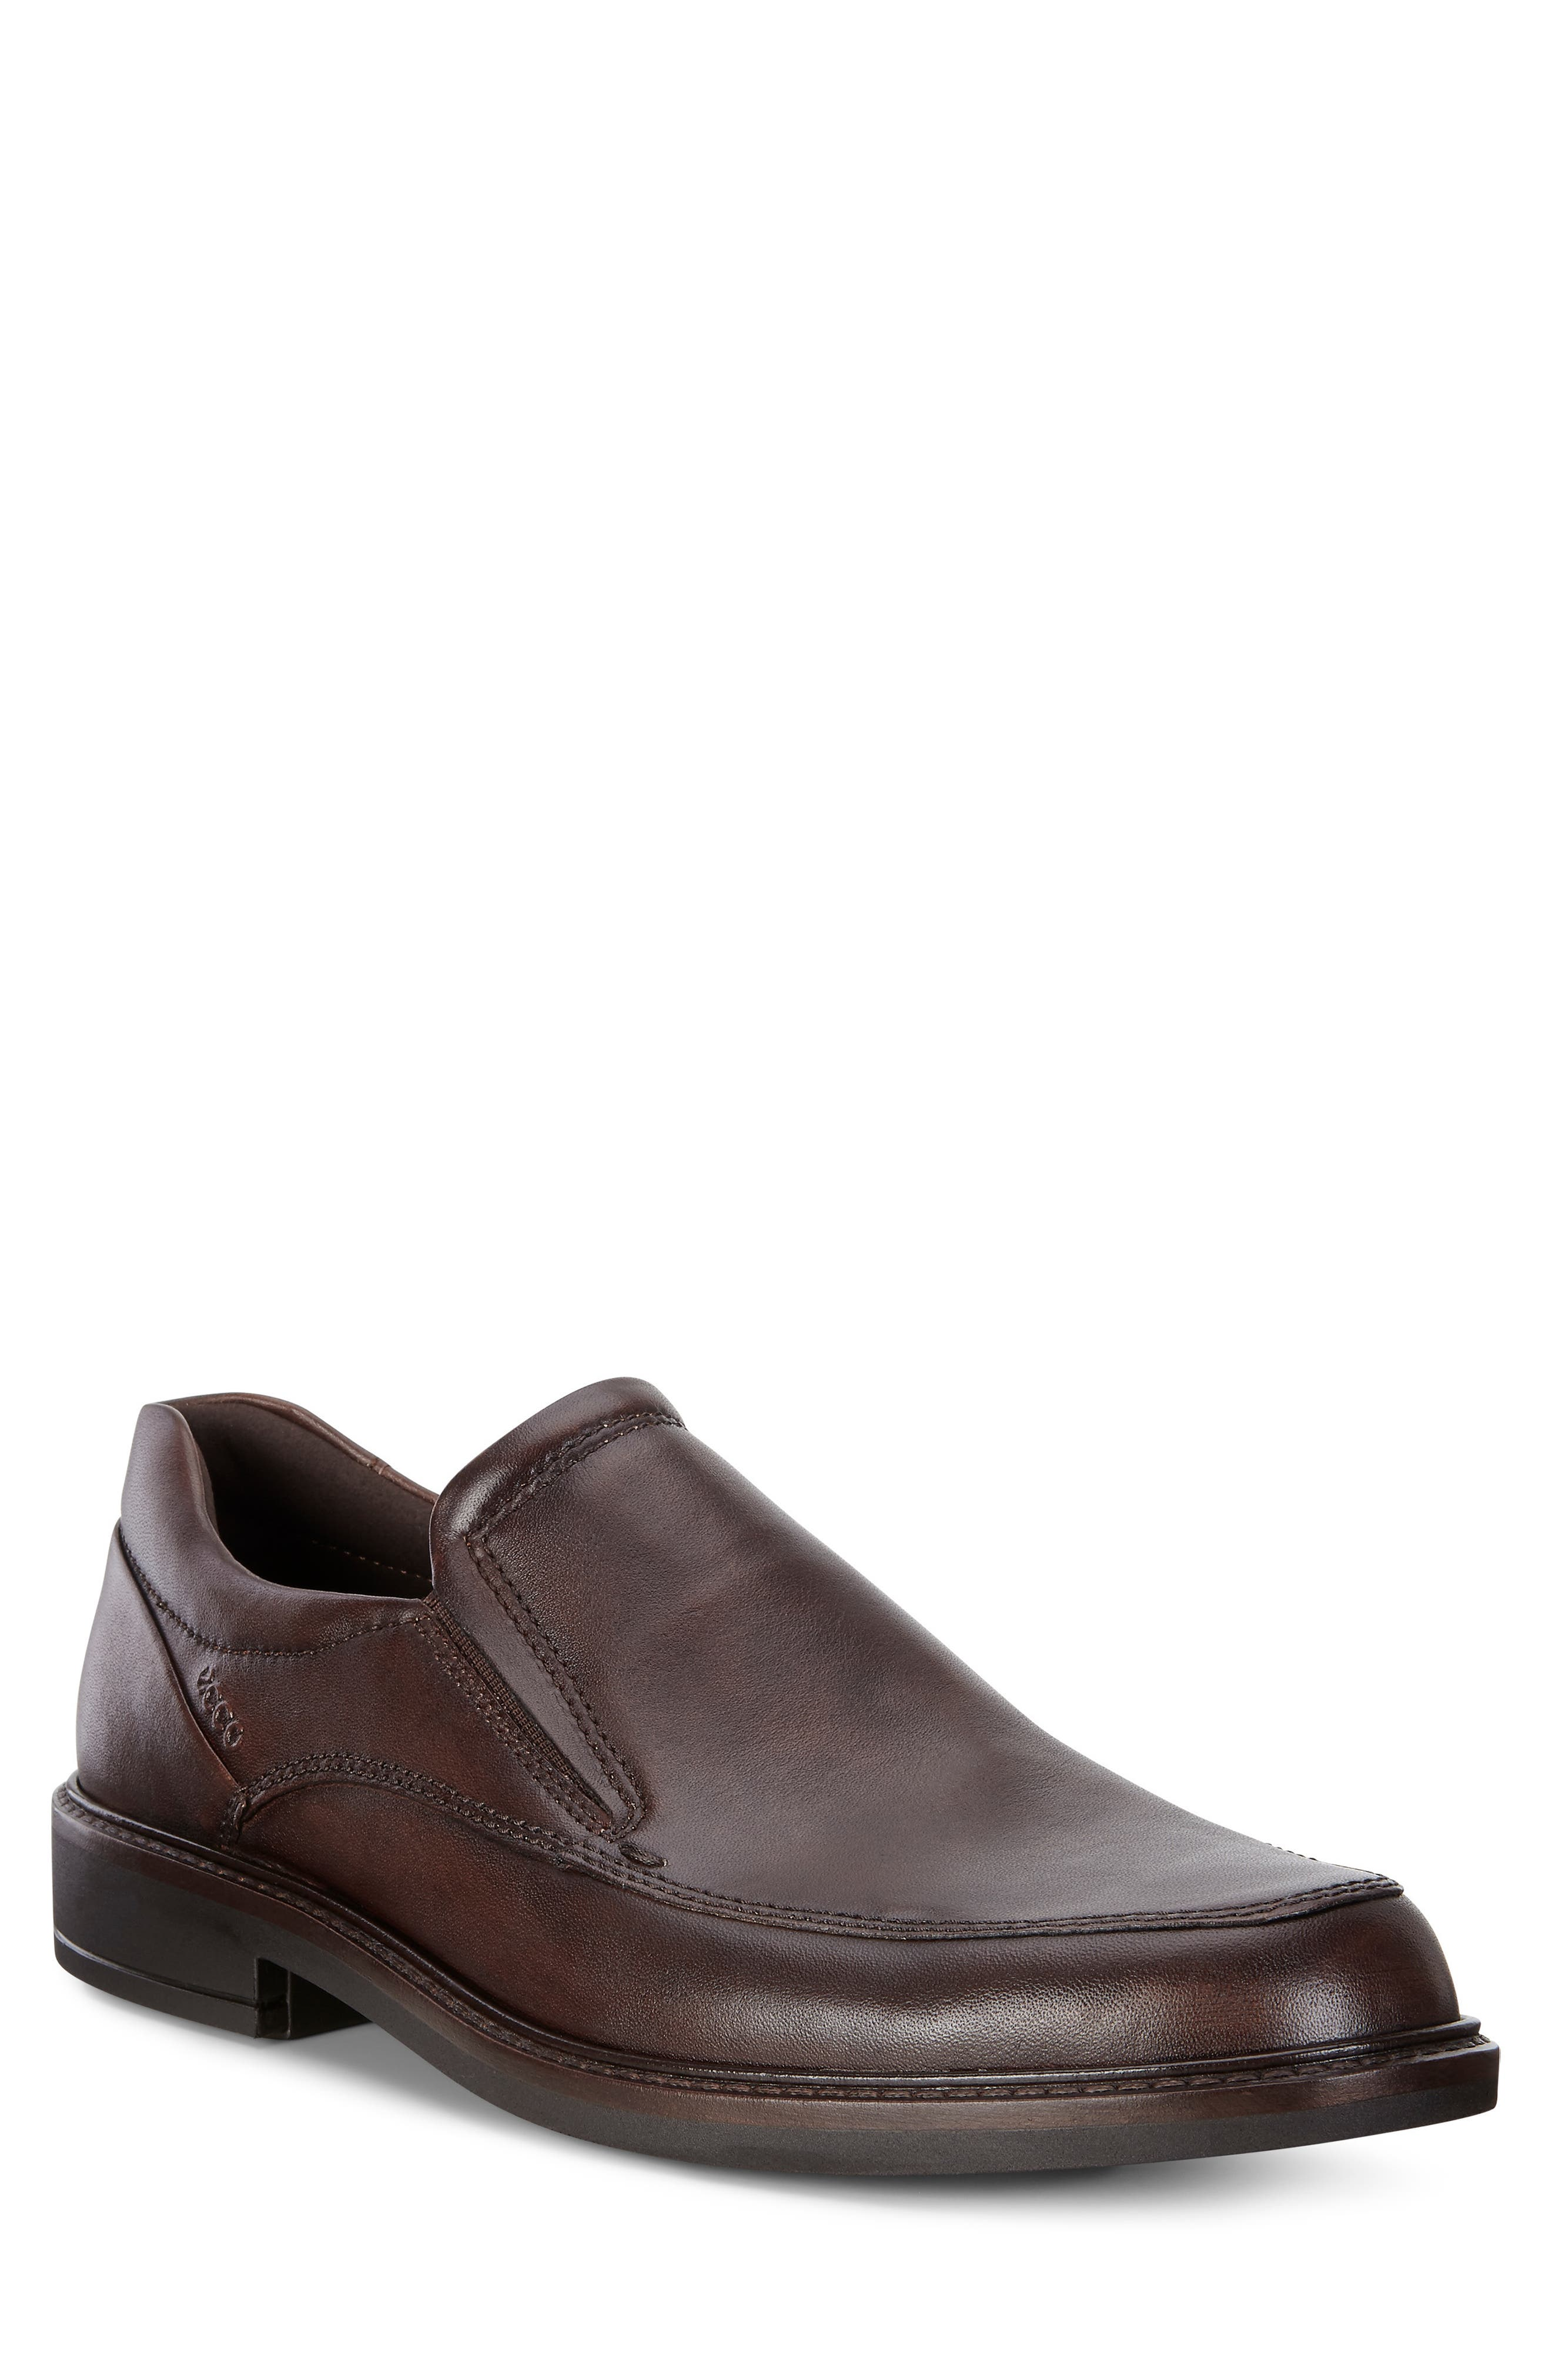 ECCO Holton Slip-On, Main, color, BROWN LEATHER